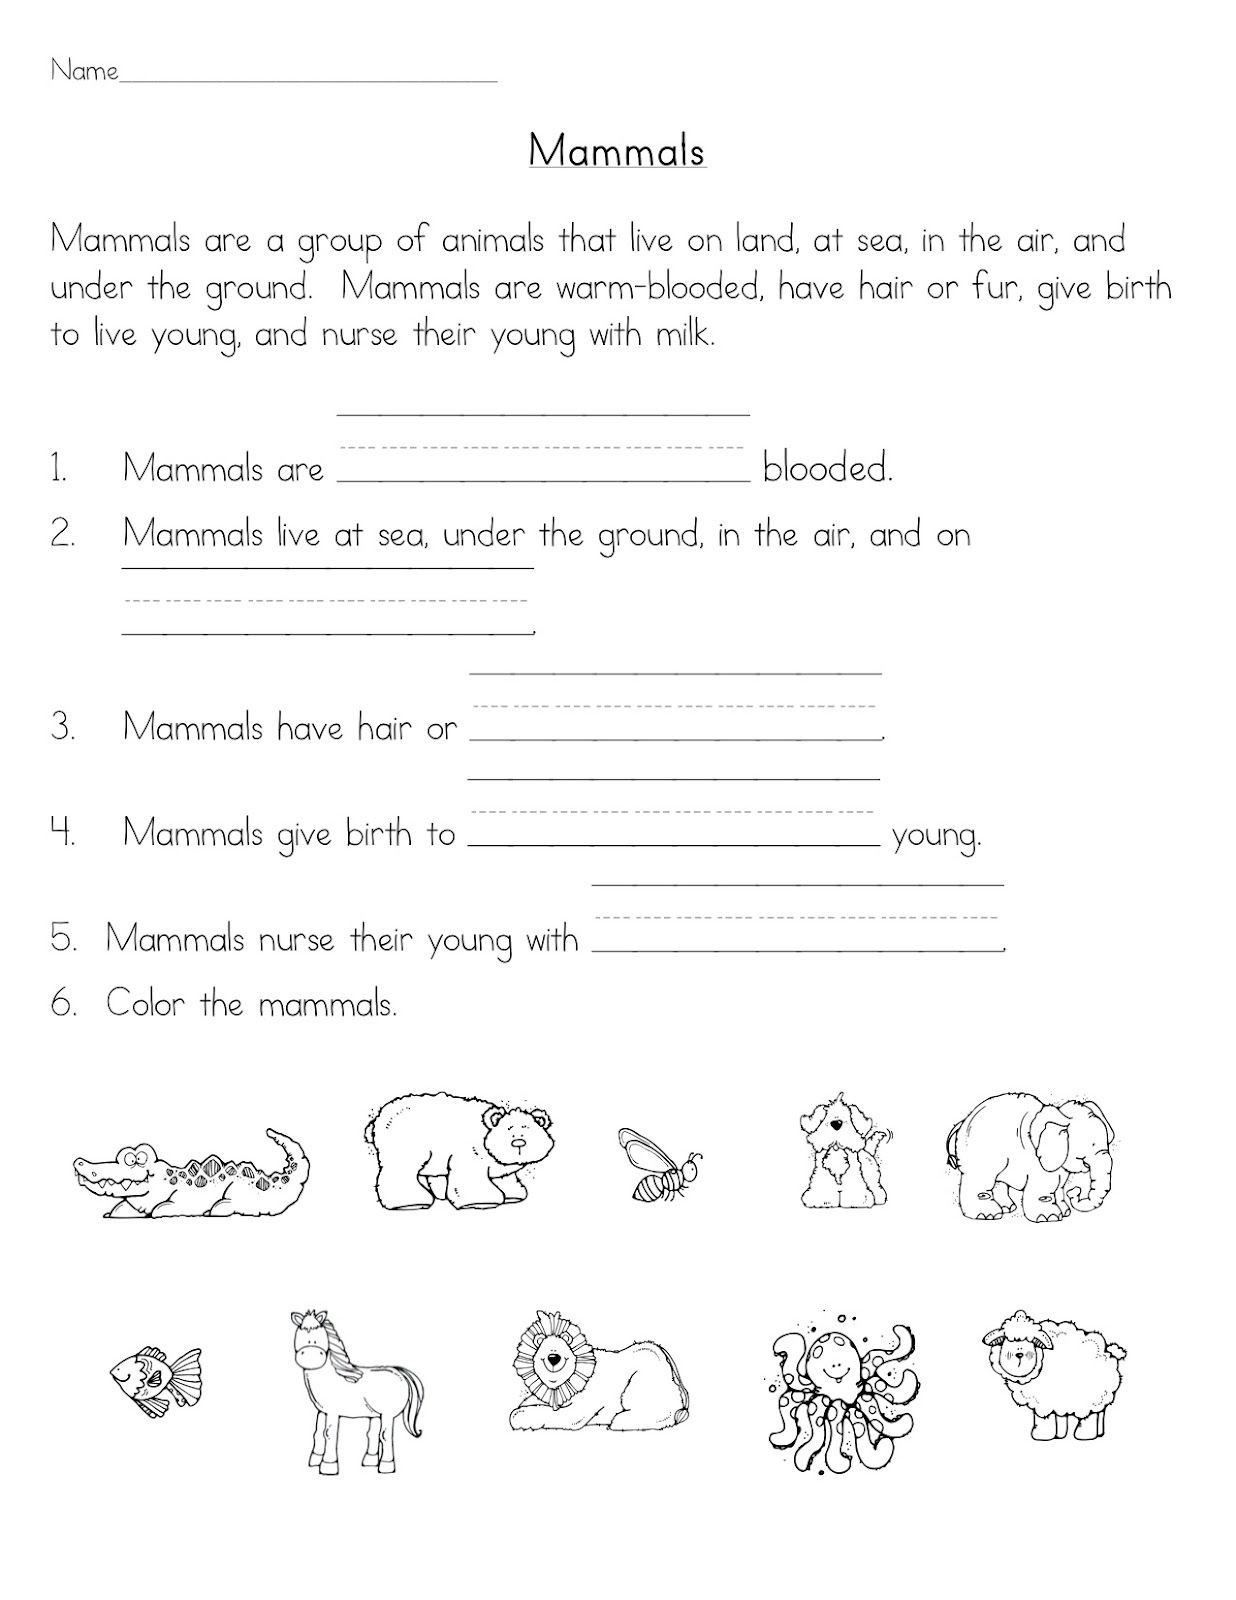 Mammals Worksheets for 2nd Grade Mammals